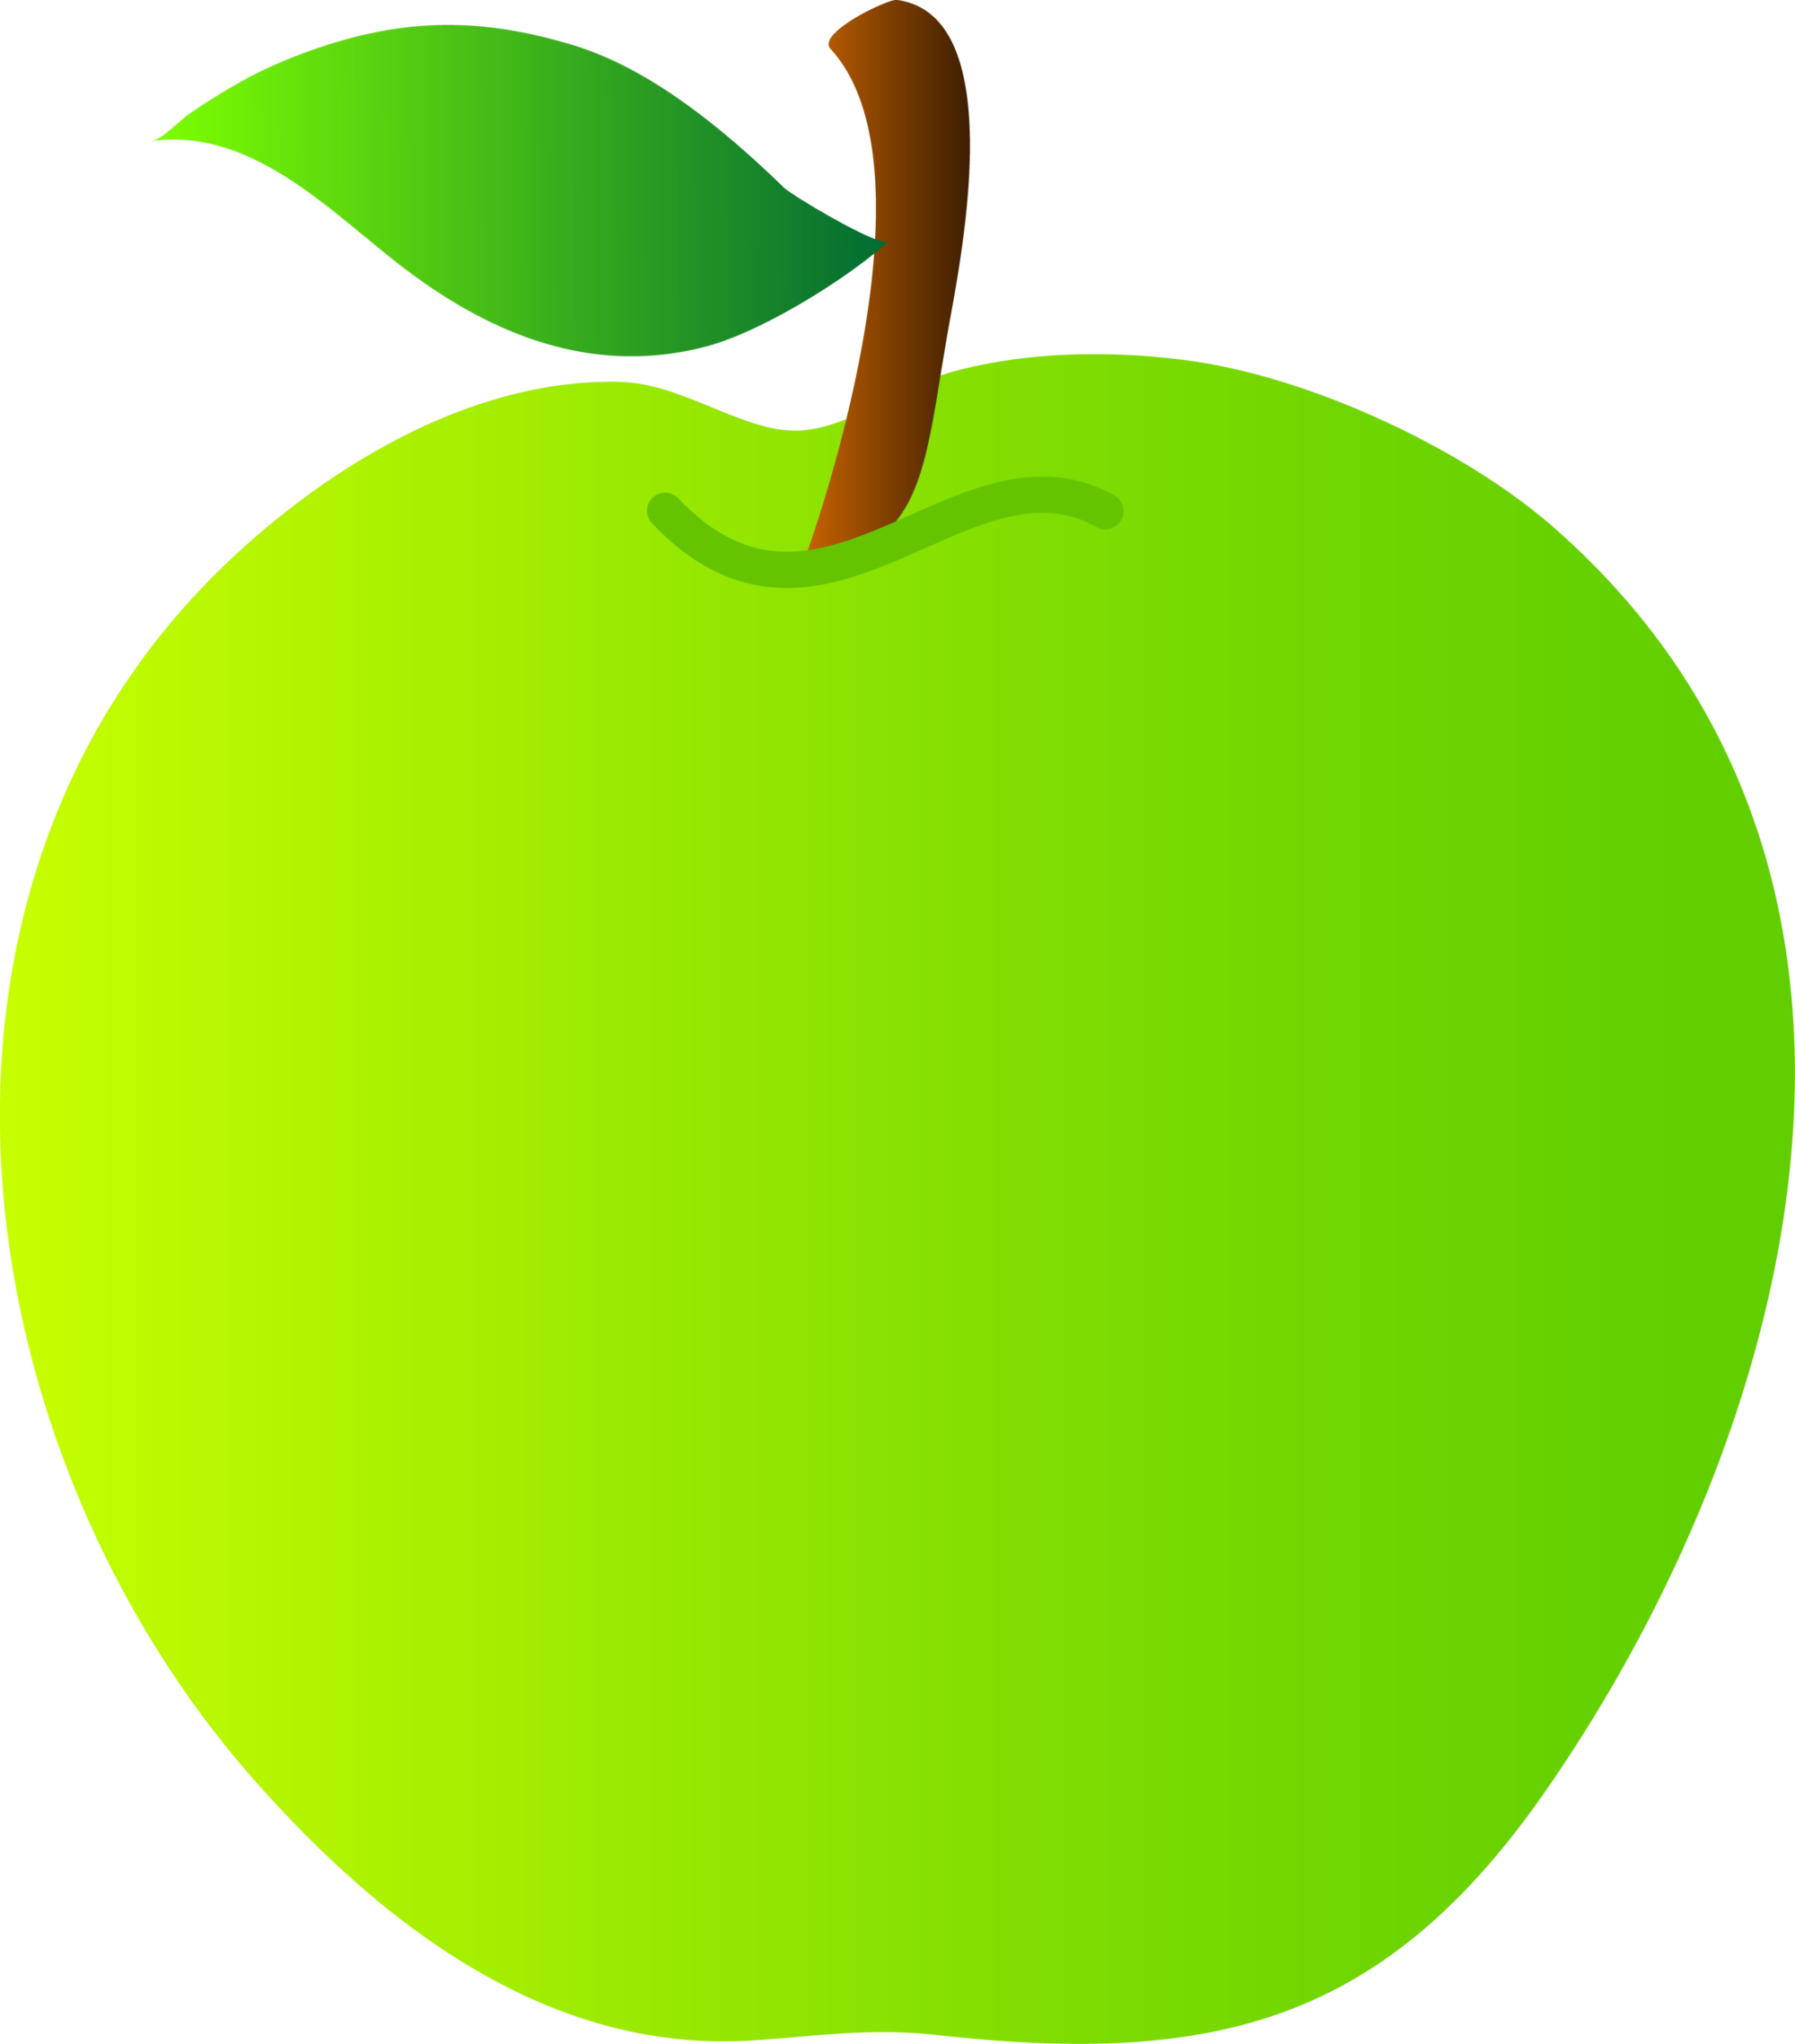 Image green png raptorlord. Scale clipart apple